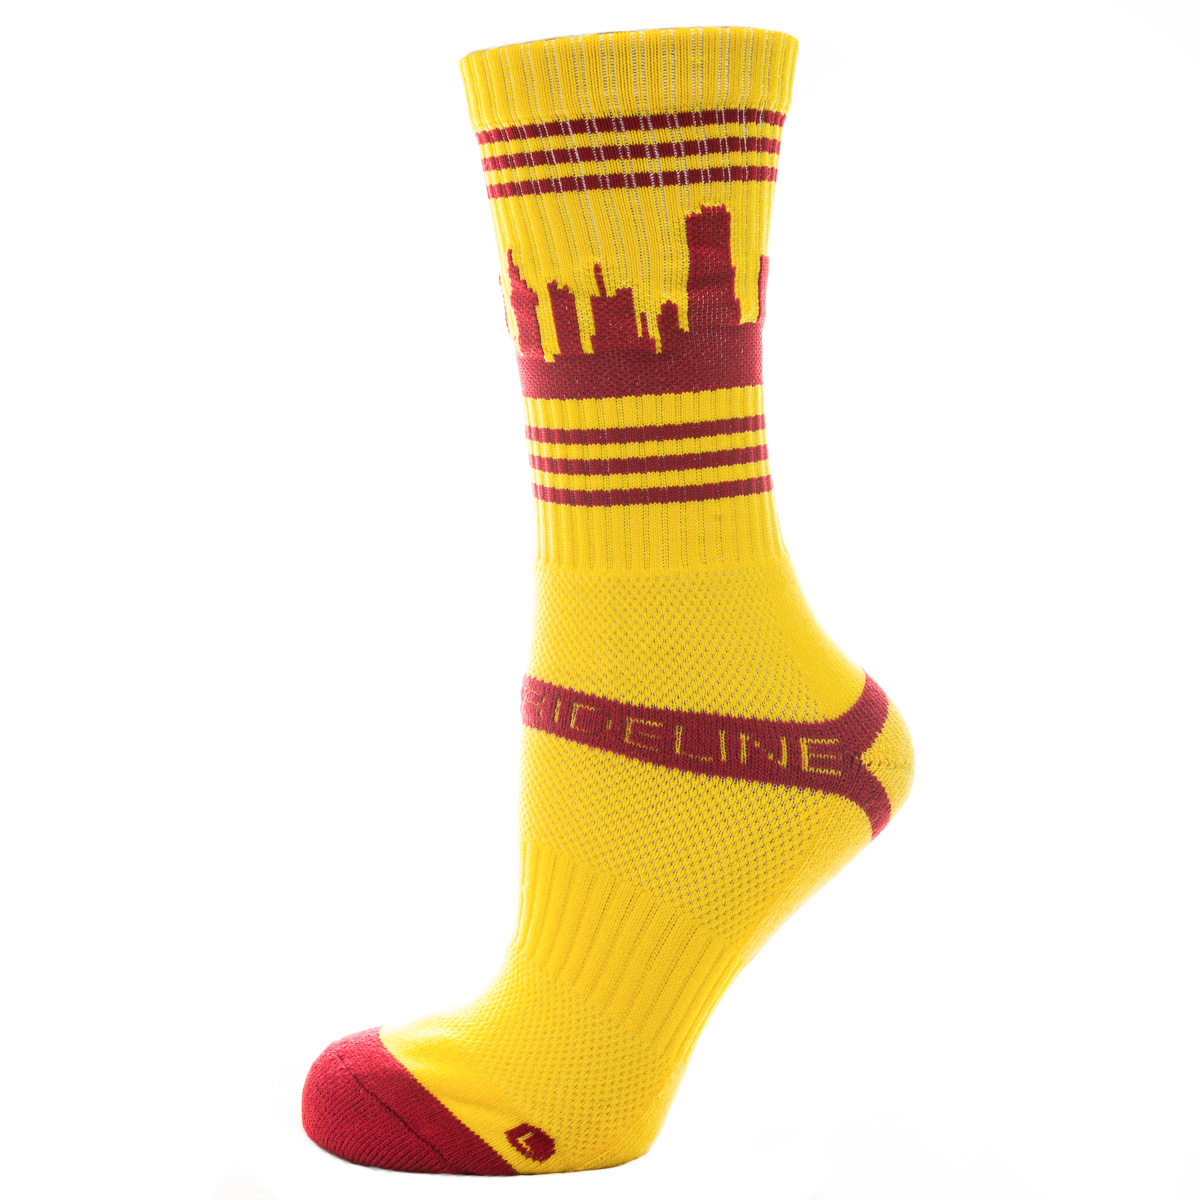 One Pair Cleveland Cavaliers Maroon Gold Double Wide For Bare Feet Wristbands